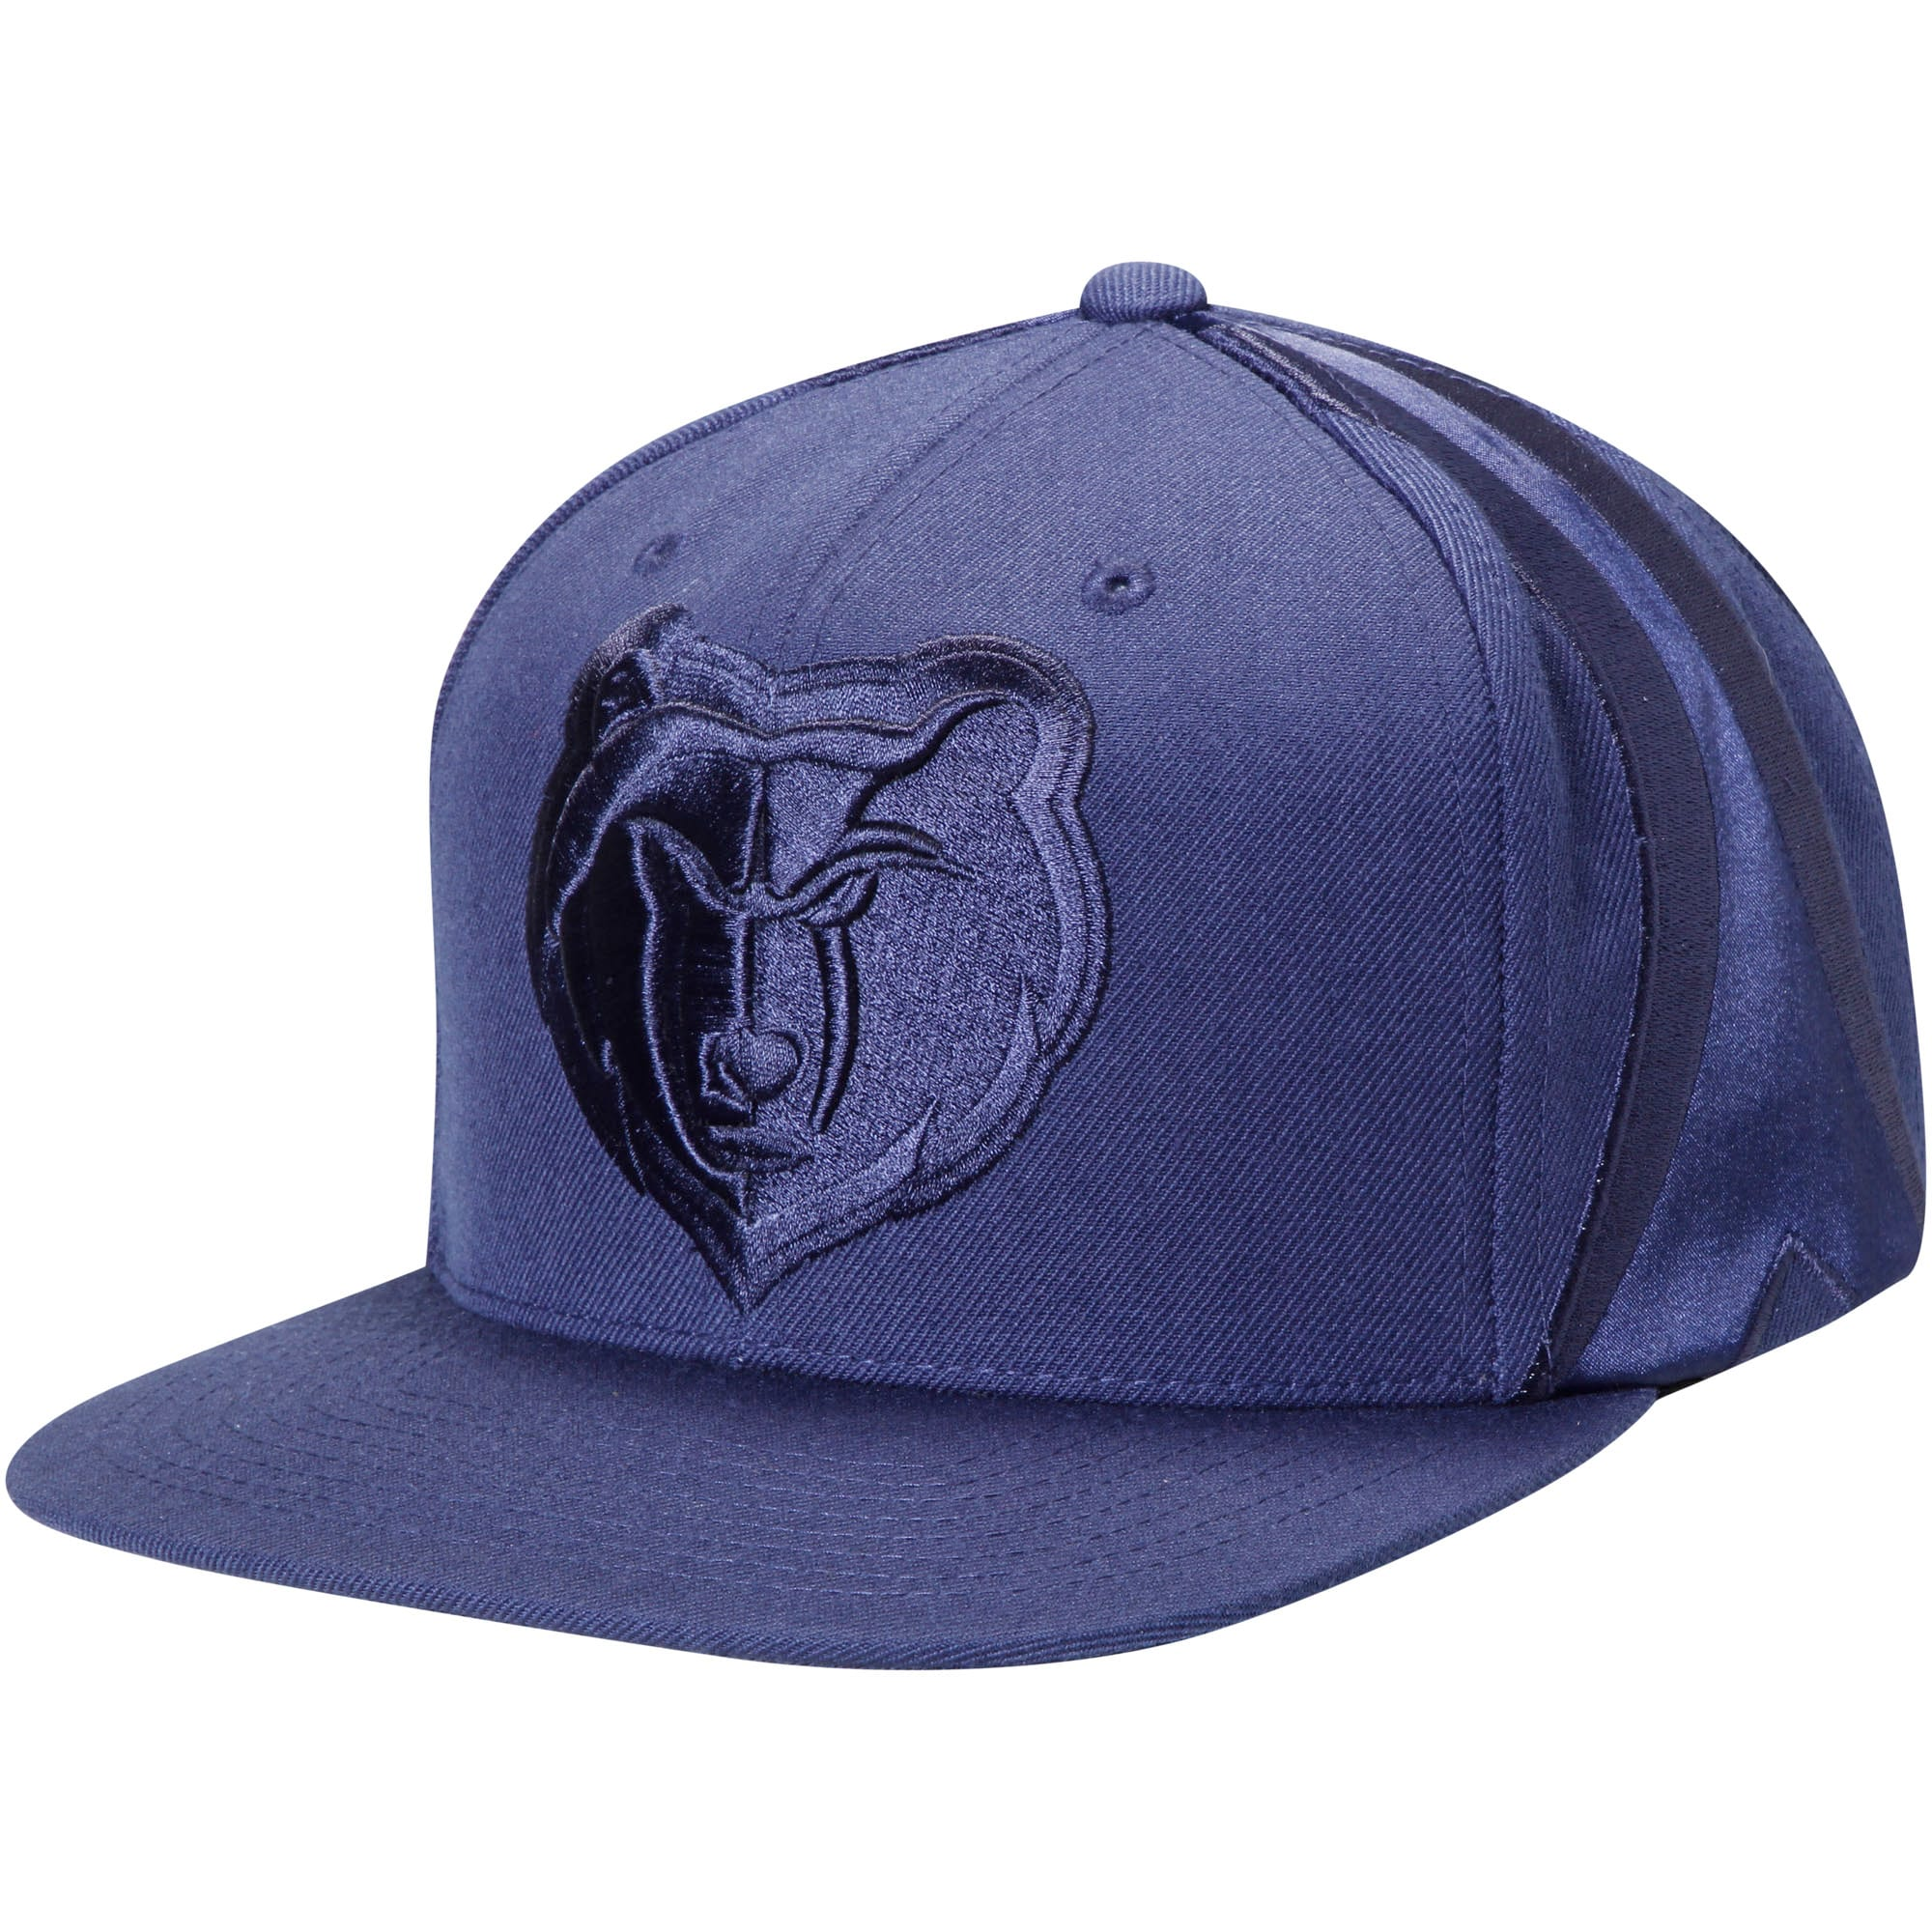 Memphis Grizzlies Mitchell & Ness 1996 Shorts Hook Snapback Adjustable Hat - Navy